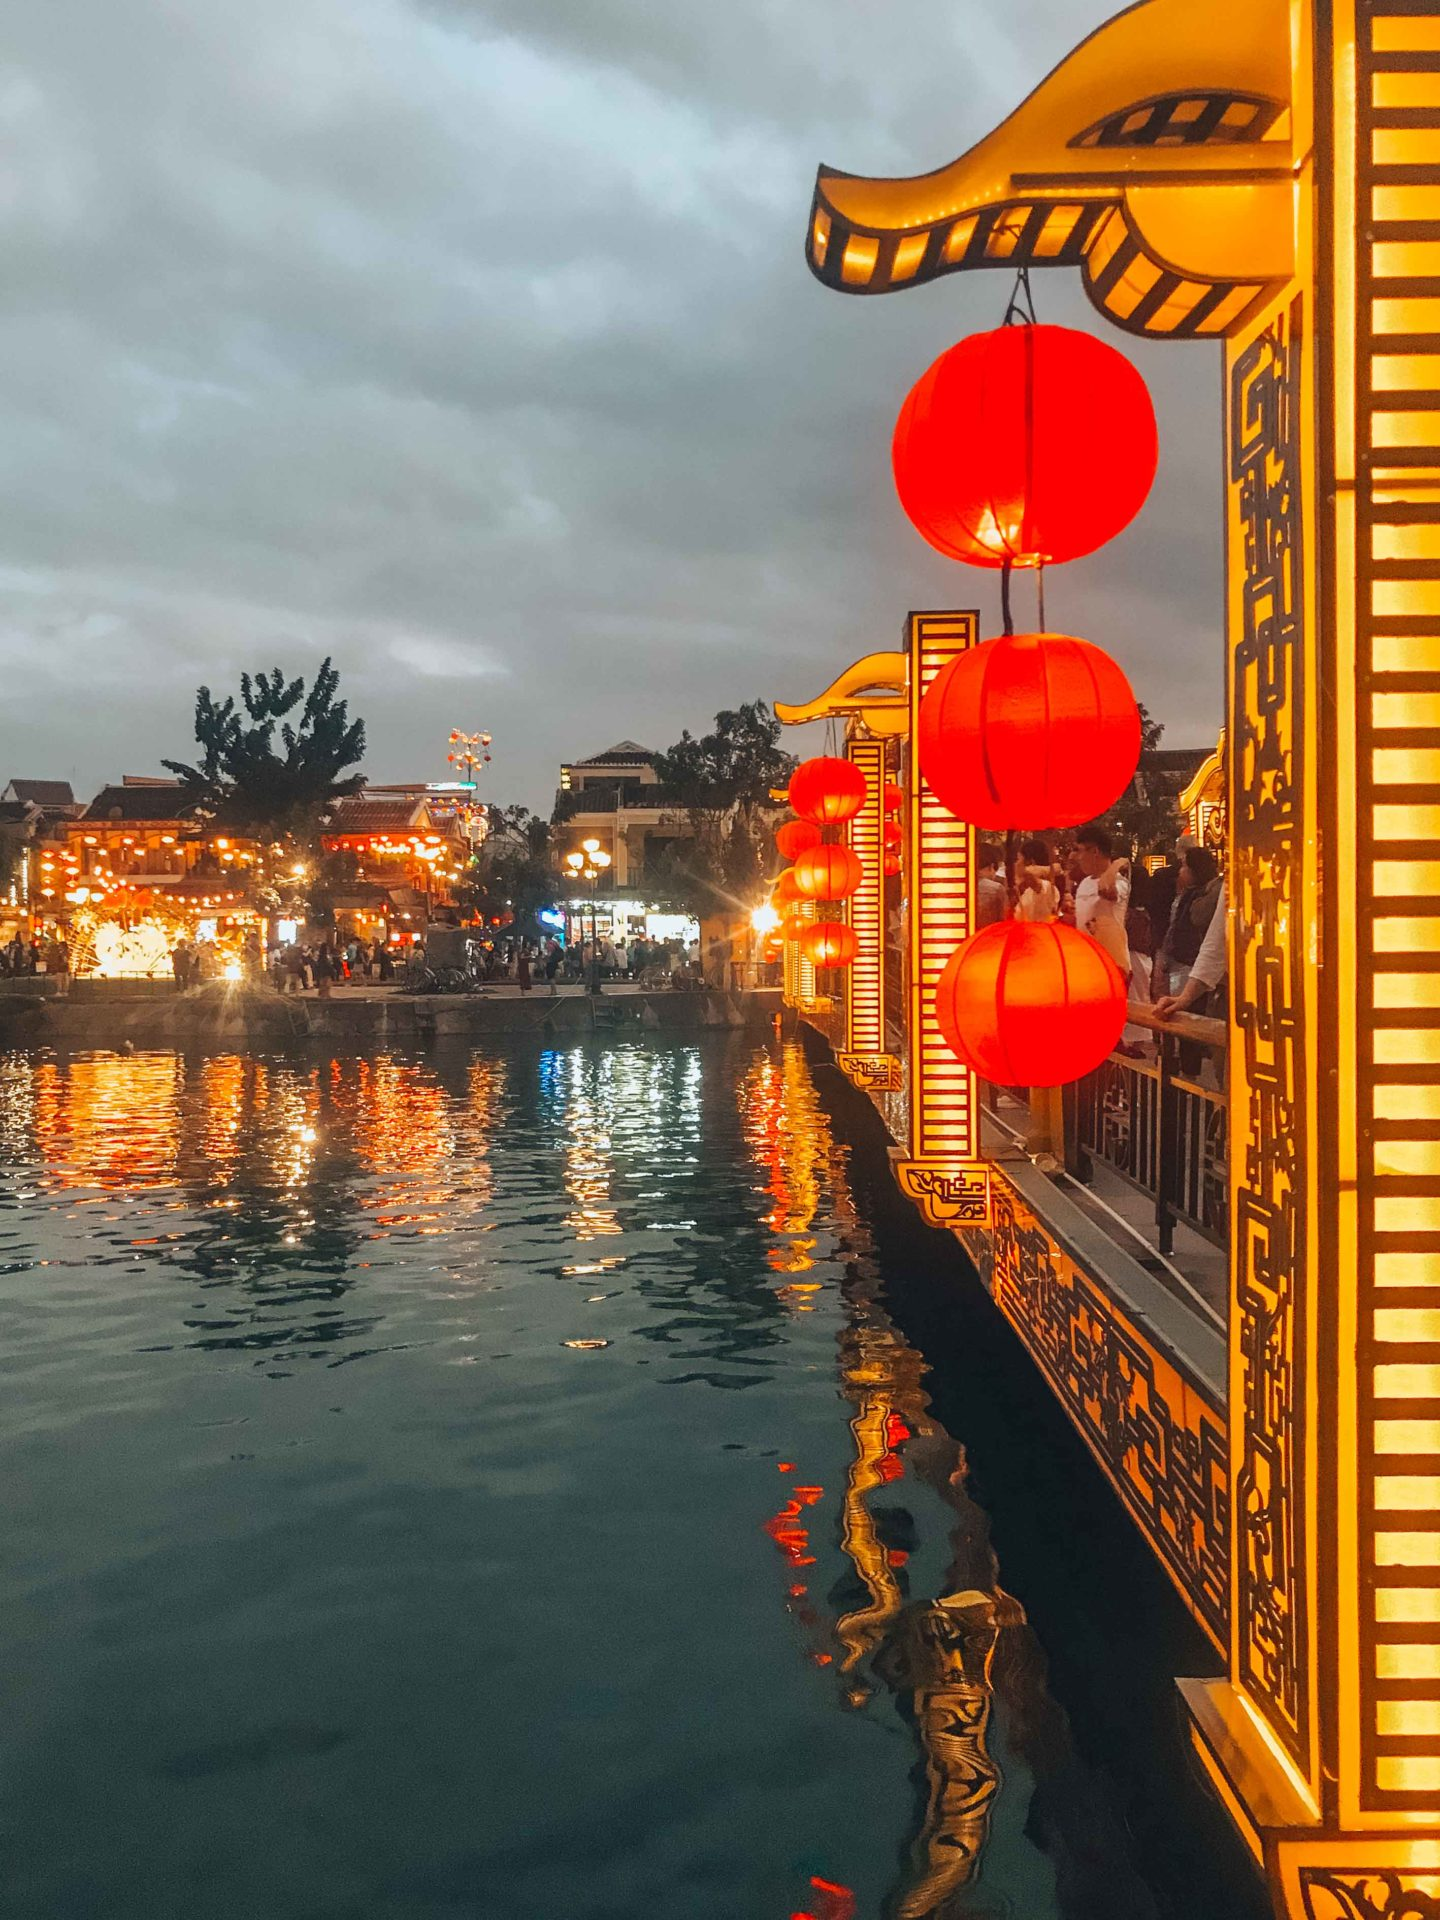 The bridge of lights by night in Hoi An, Vietnam